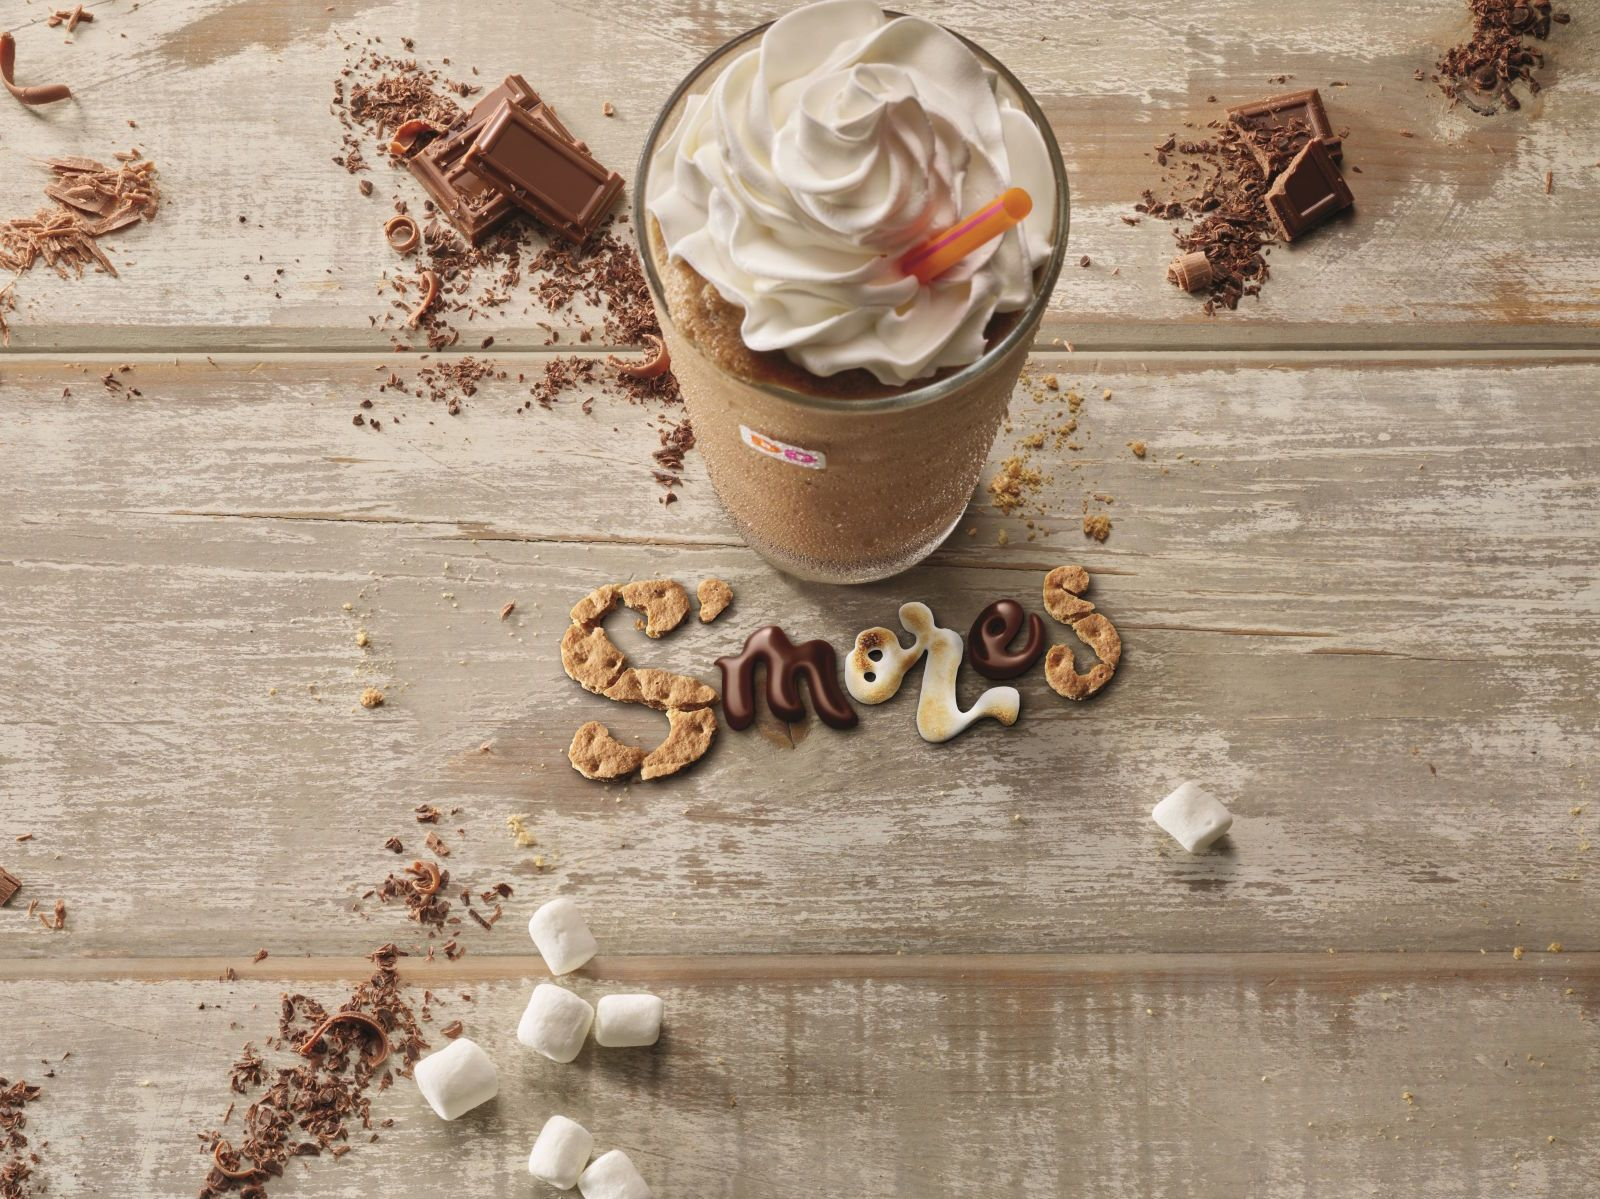 Dunkin' Donuts Releases The Sexiest S'mores Drink Ever